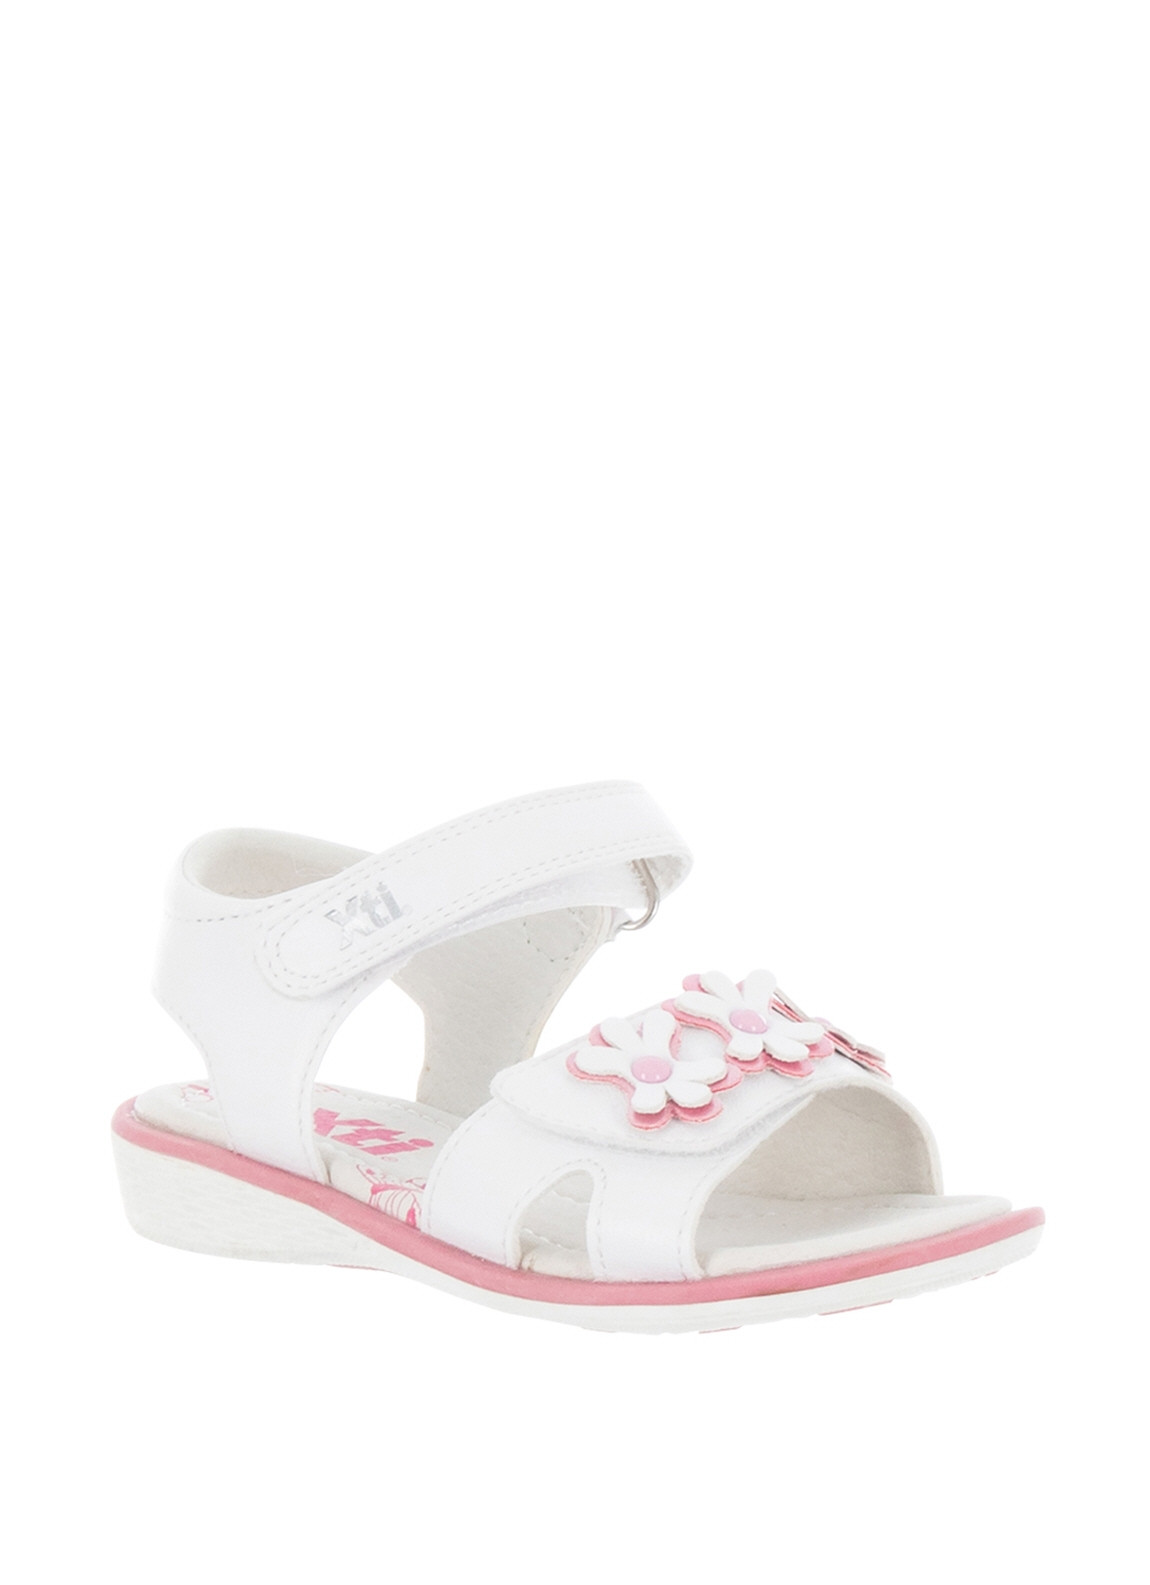 b17b0fbf XTI Girls Flower Velcro Strap Sandals, White | McElhinneys